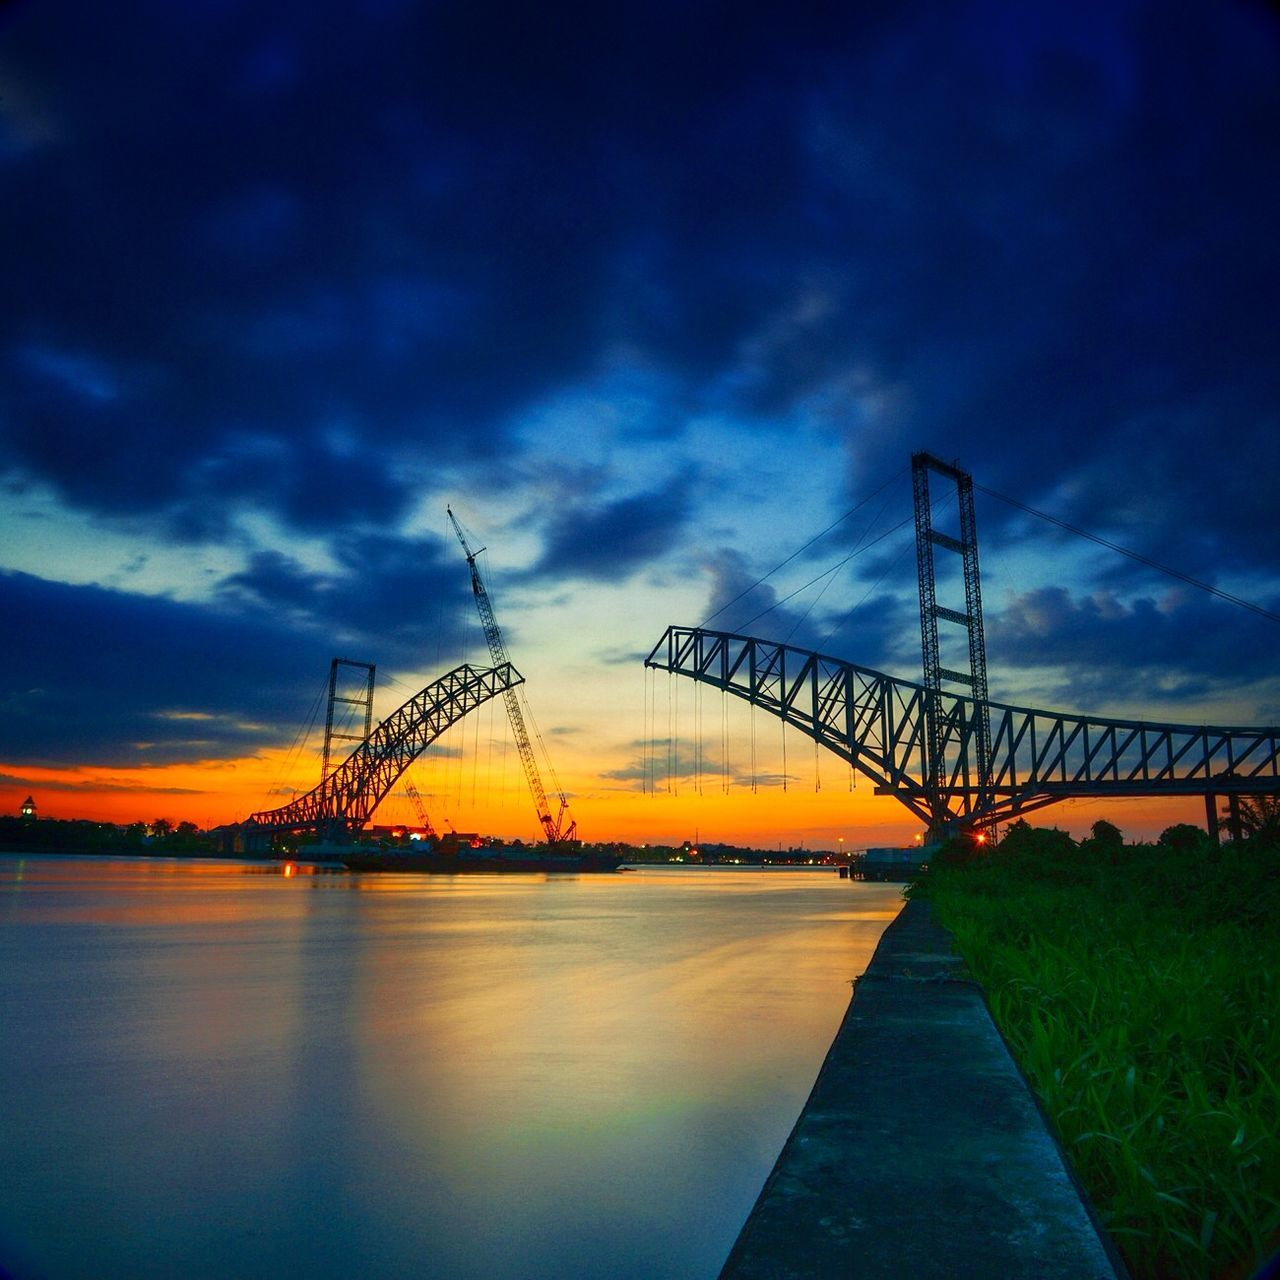 sky, bridge - man made structure, built structure, connection, cloud - sky, architecture, outdoors, sunset, water, travel destinations, no people, nature, transportation, building exterior, beauty in nature, industry, city, day